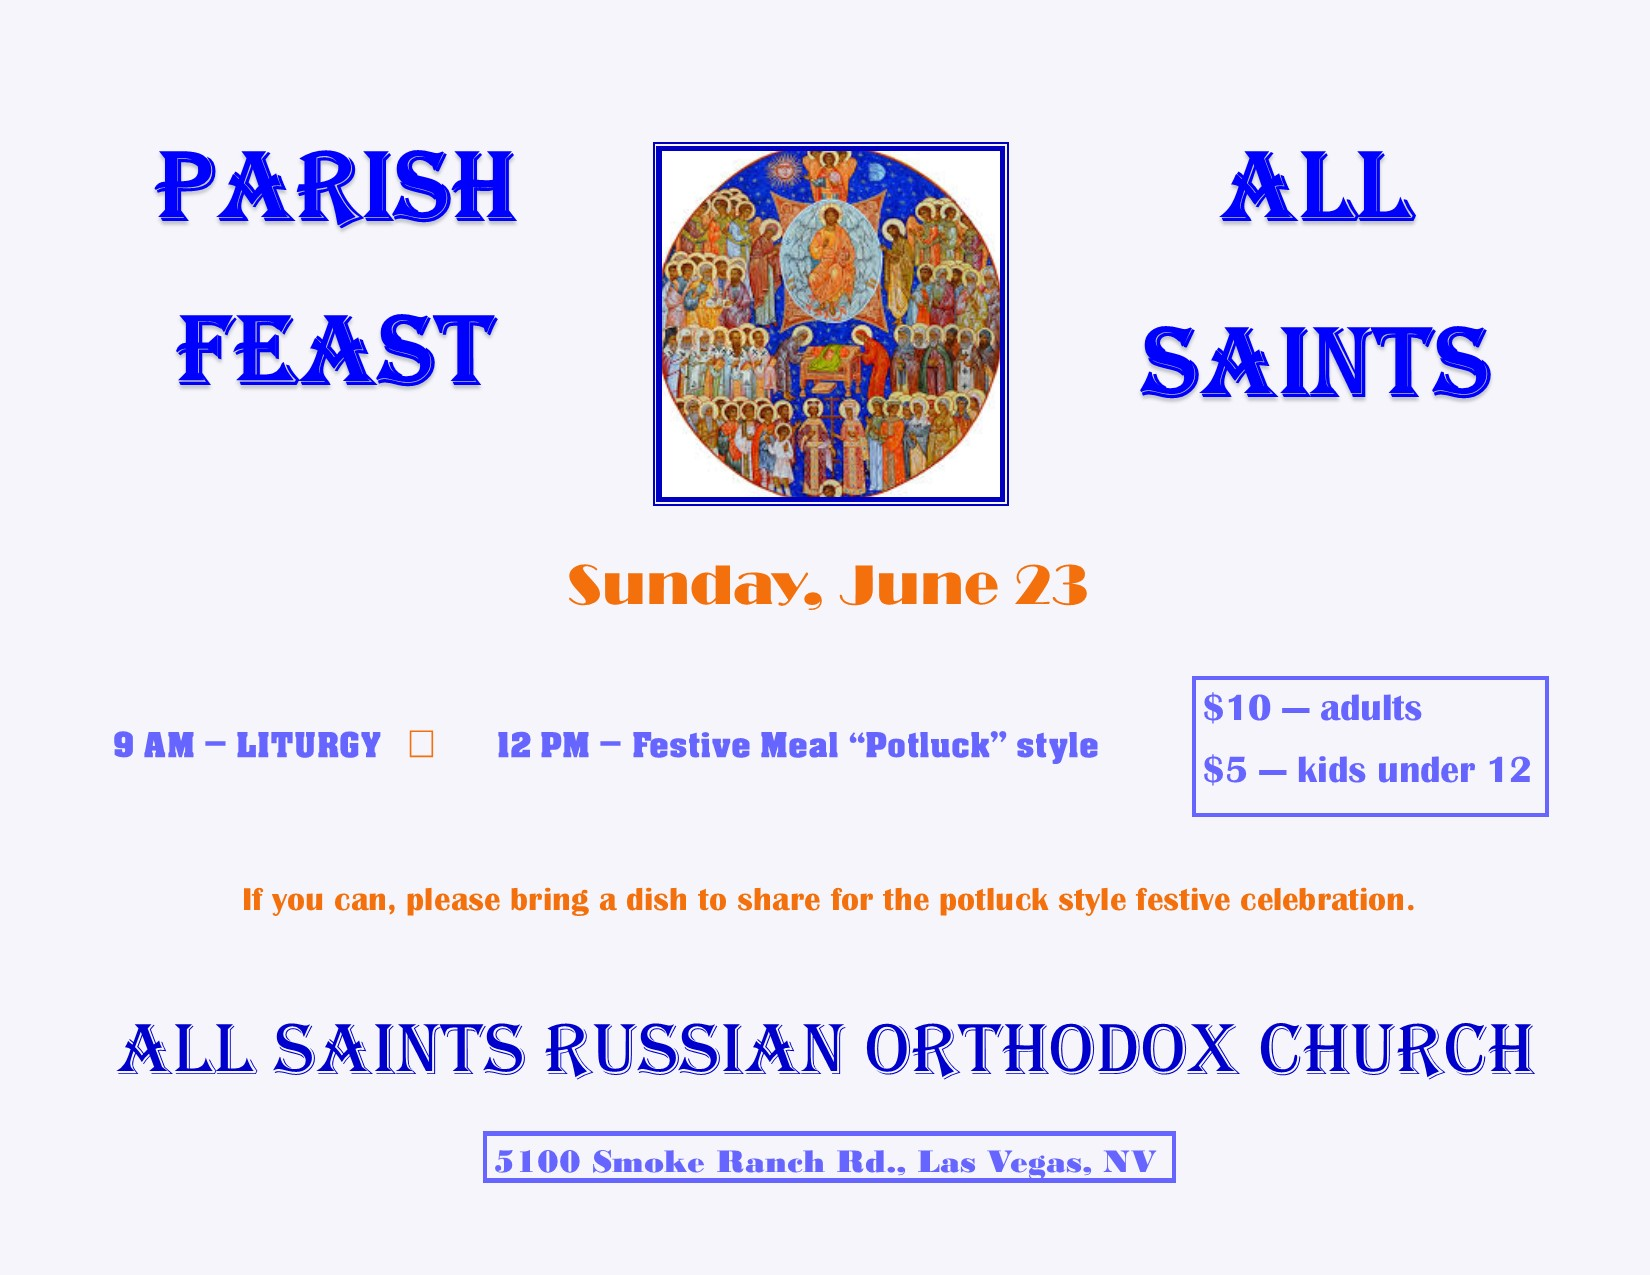 "June 23 is Parish feast day. Festive meal ""potluck"" style offered at 12PM after Divine Liturgy, which starts at 9AM. The tickets are $10/adult and $5/child under 12. If you can, please bring a dish to share for the potluck style festive celebration."